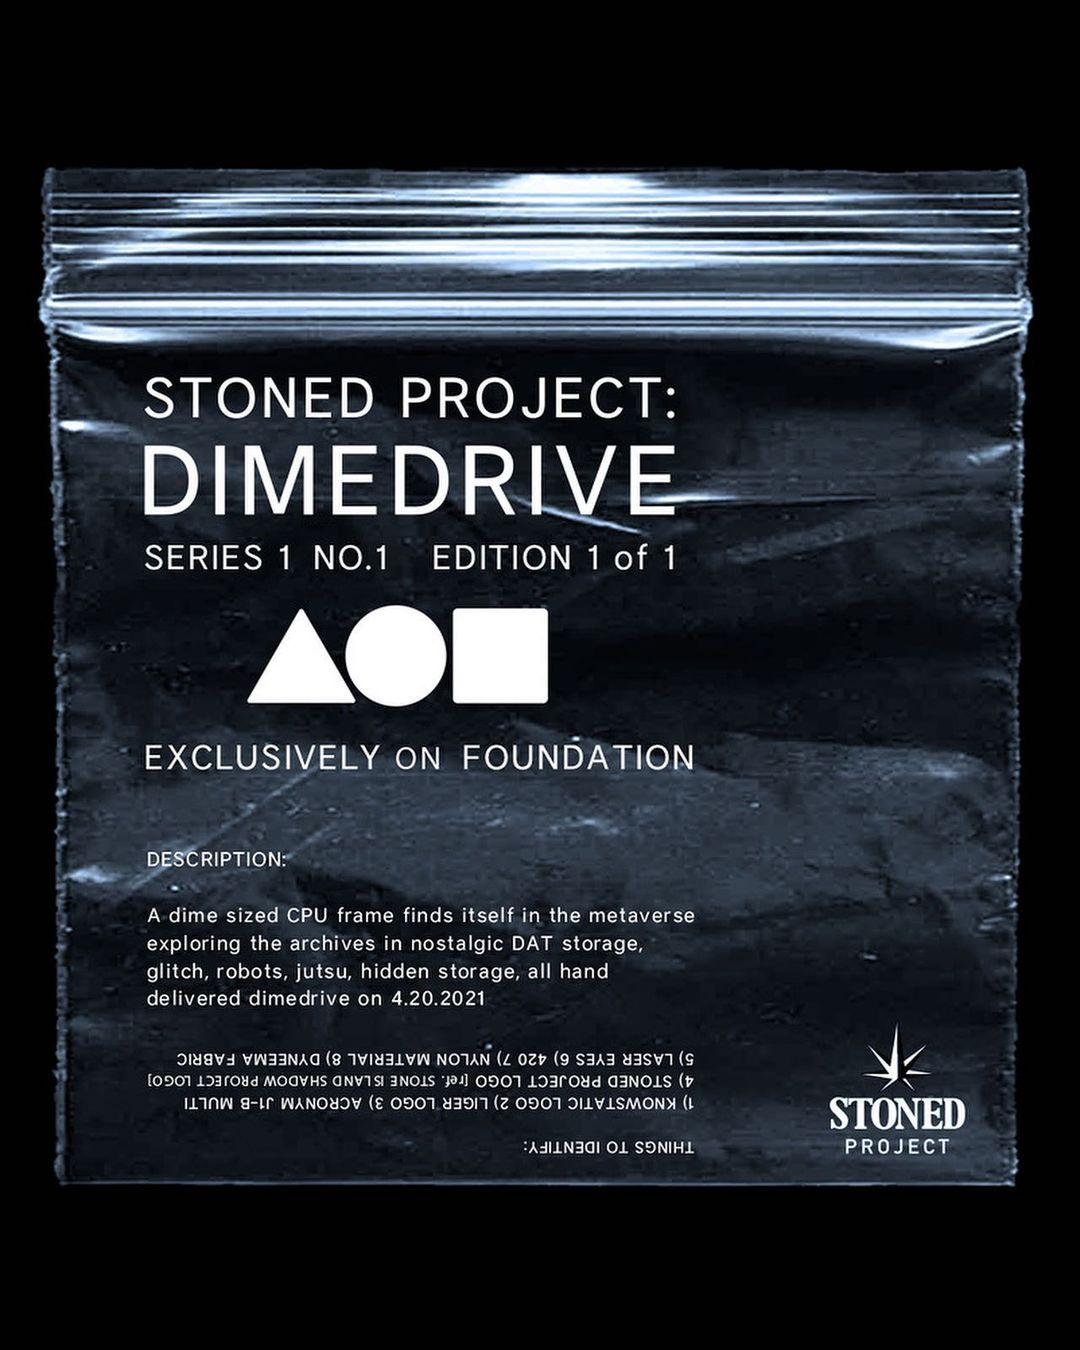 Stoned Project: Dimedrive